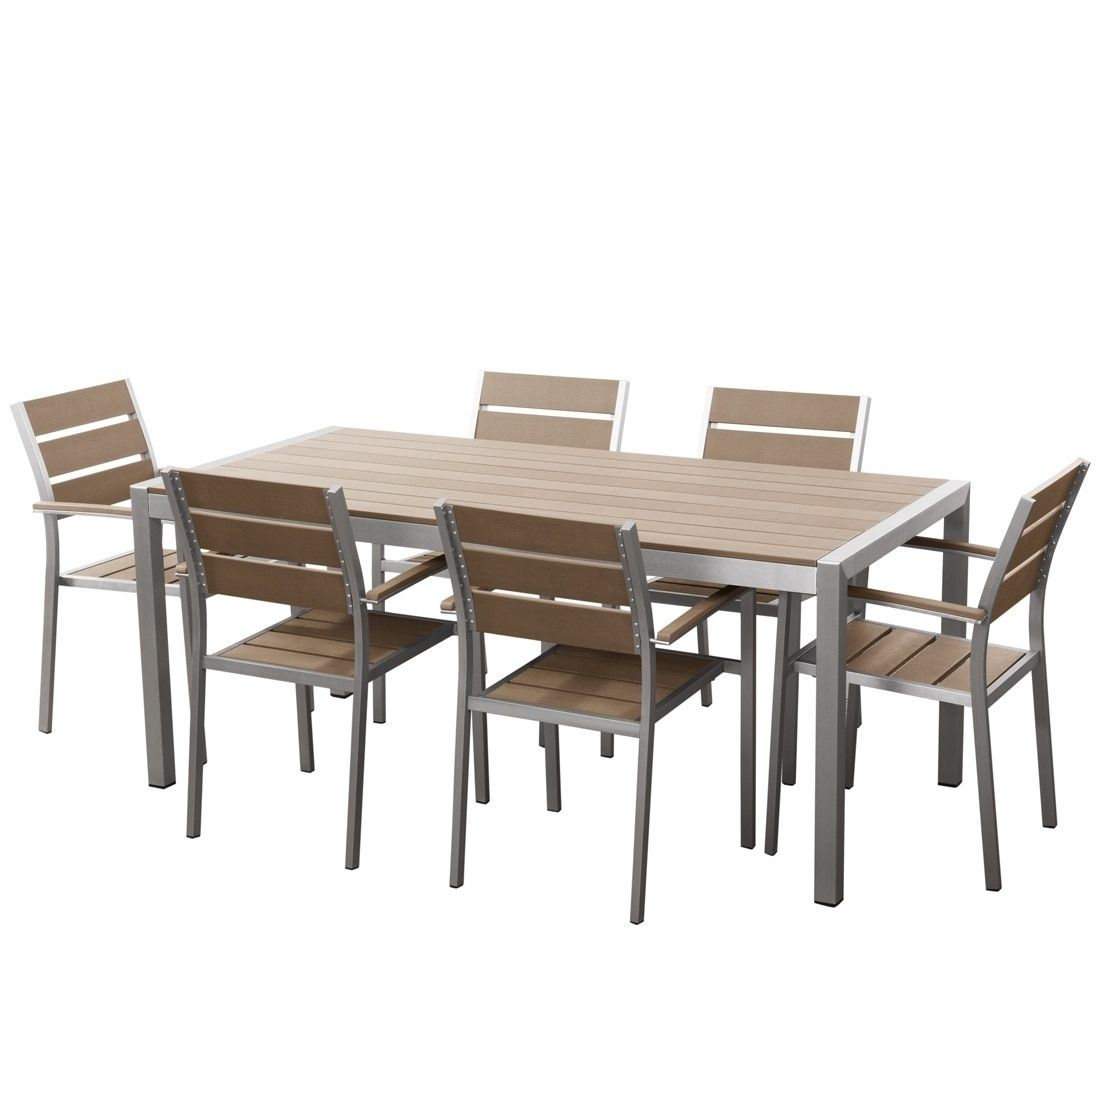 Velago Aluminum And Faux Wood Outdoor Dining Set 6 Chairs Vittore Brown Vernio Size 7 Piece Sets Patio Furniture